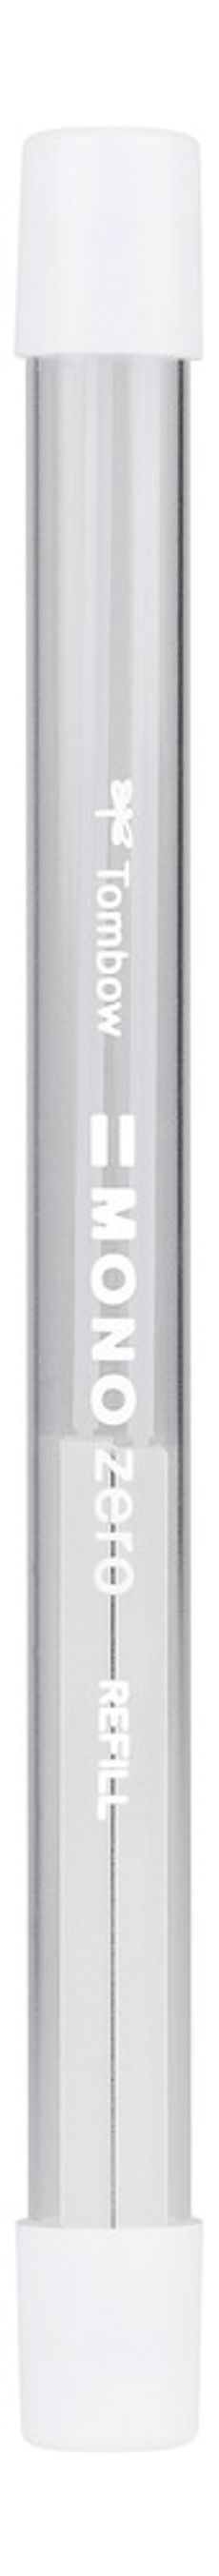 MONO zero pointe rectangulaire recharge